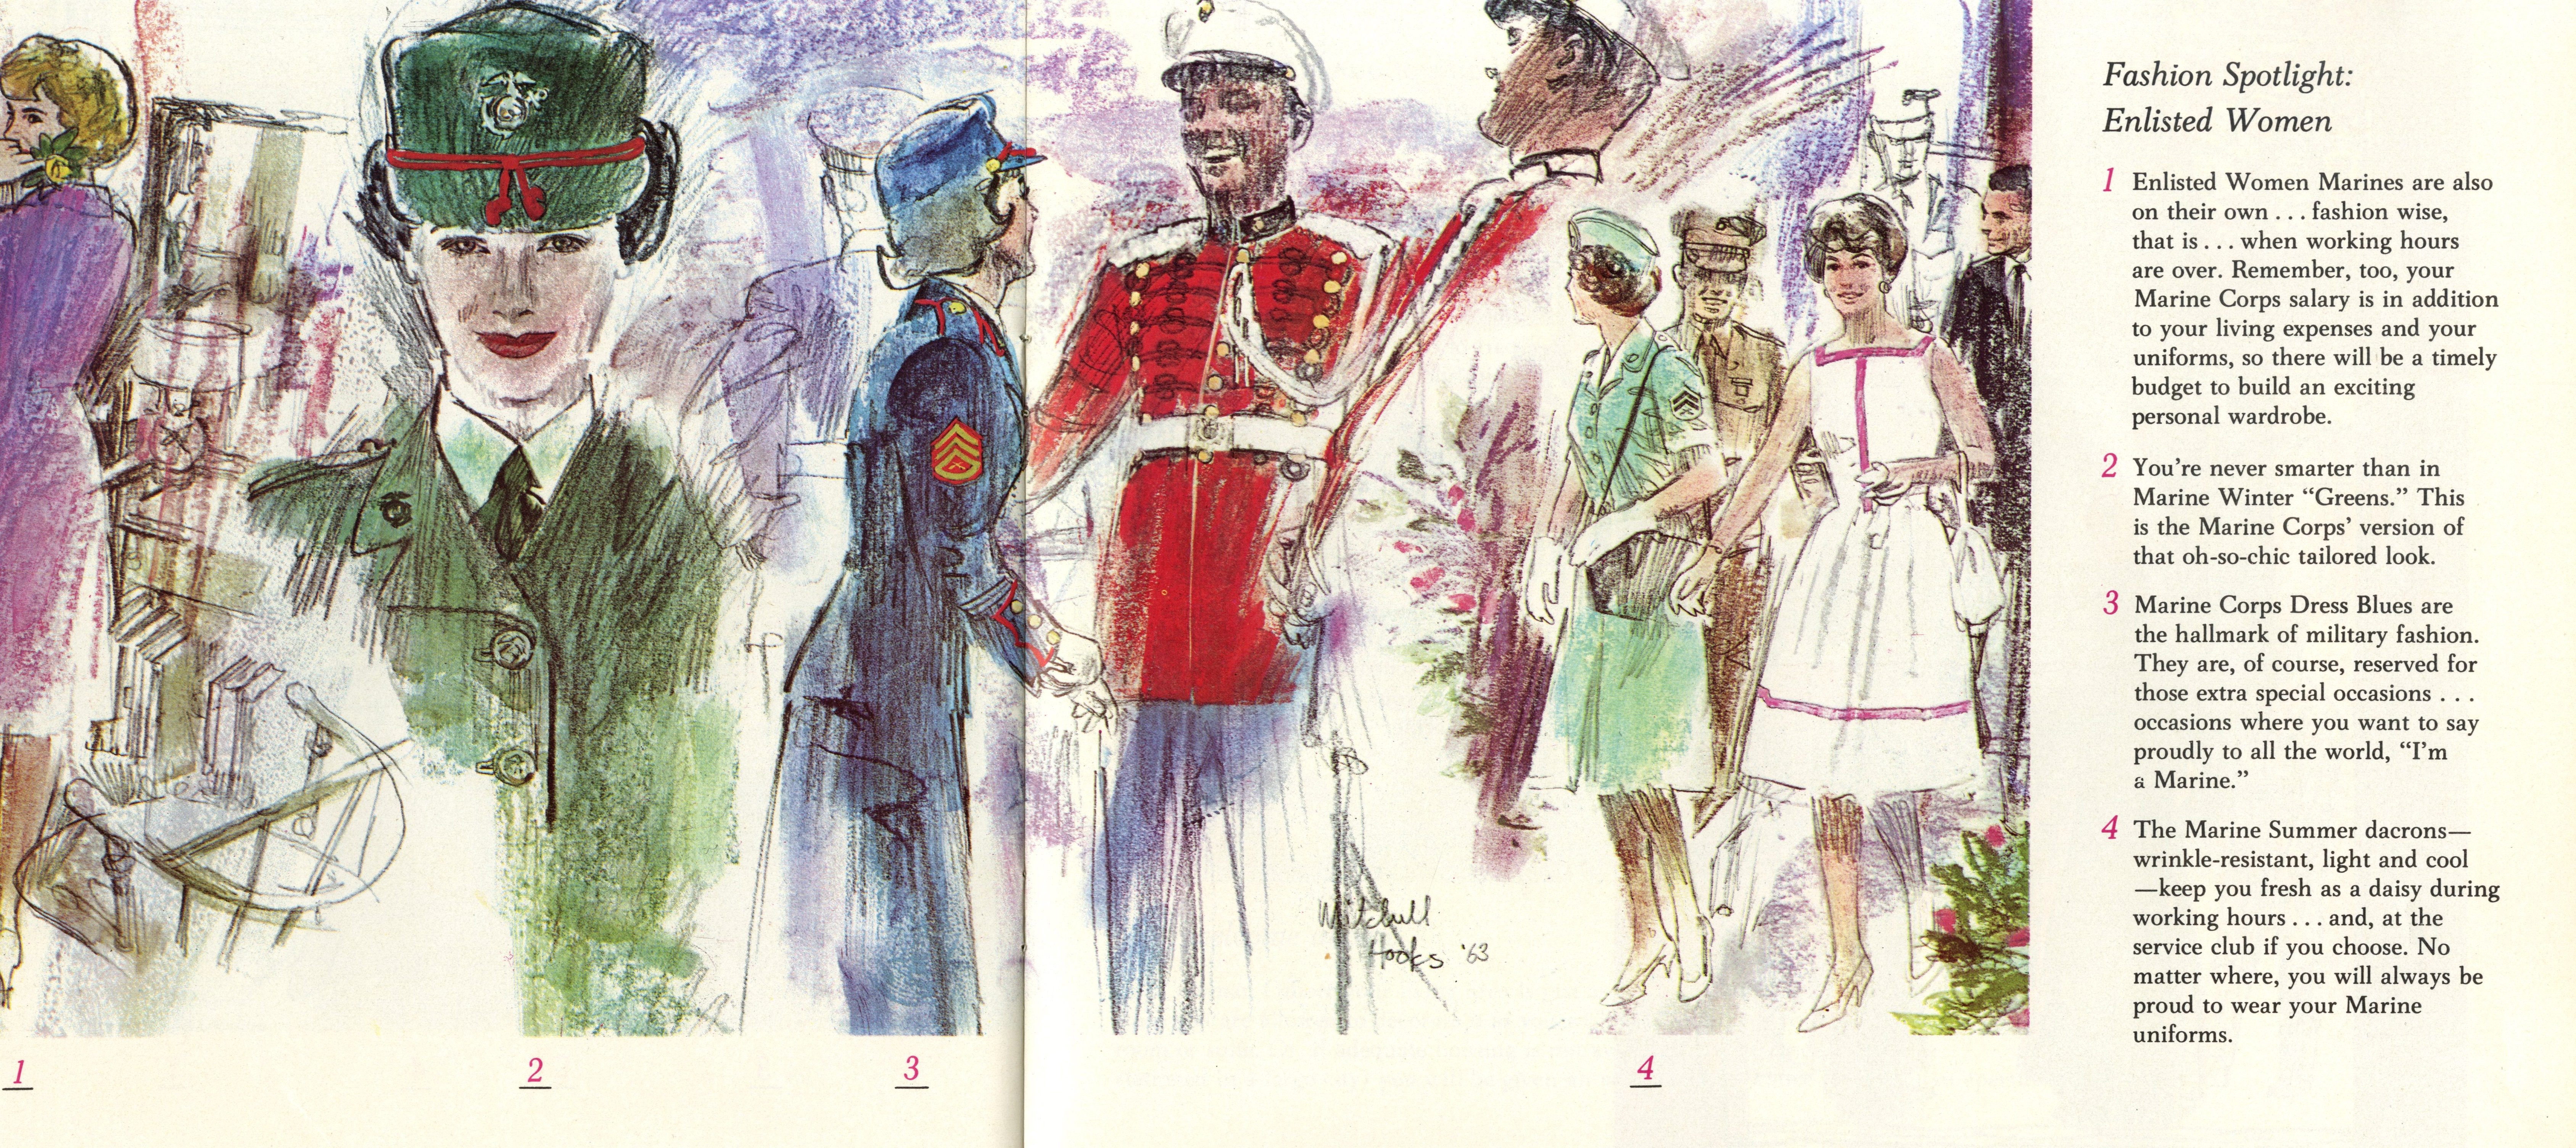 Hand-drawn depiction of men and women socializing in military uniforms.